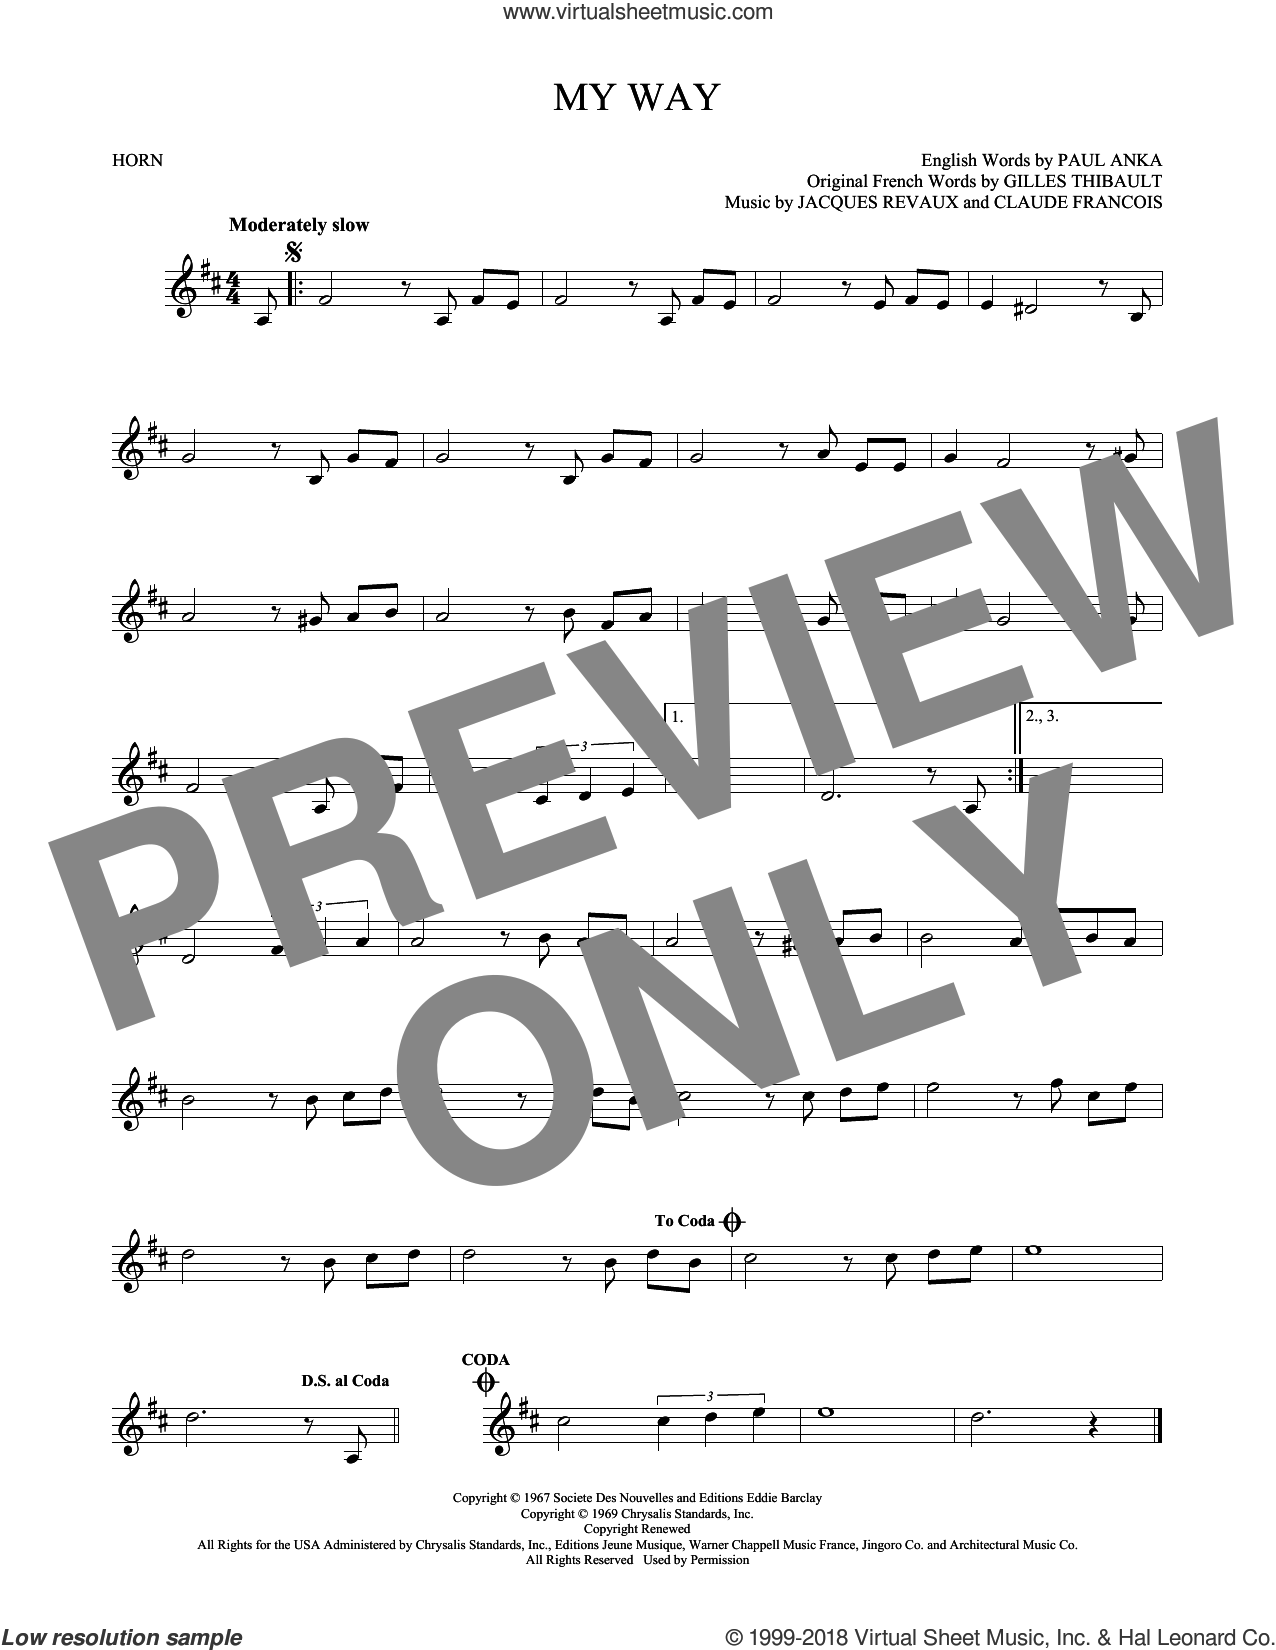 My Way sheet music for horn solo by Frank Sinatra, Elvis Presley, Claude Francois, Gilles Thibault, Jacques Revaux and Paul Anka, intermediate skill level